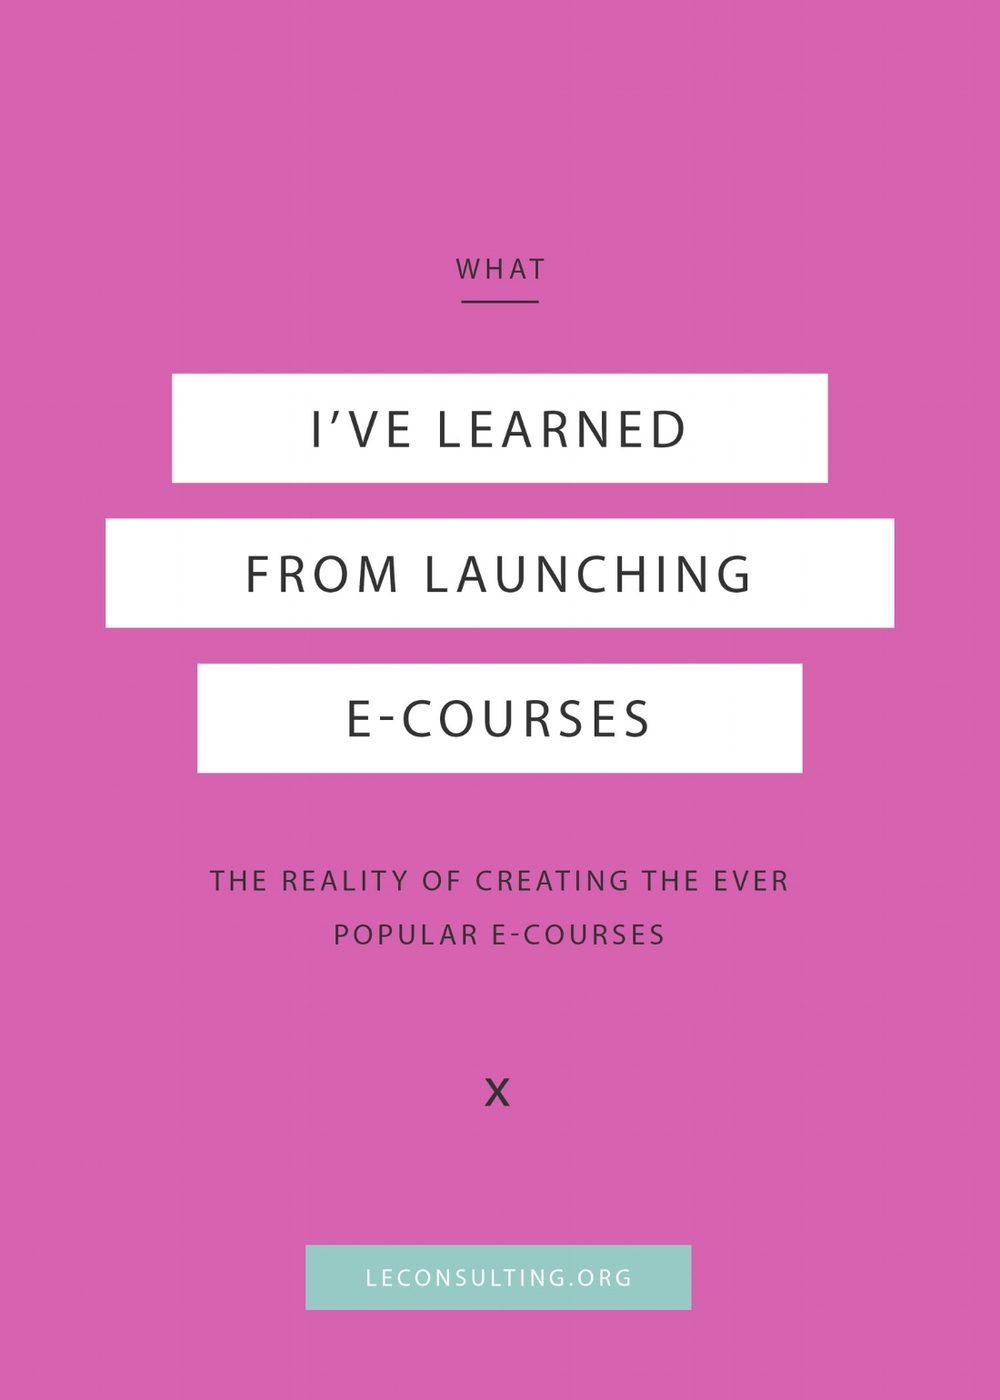 Everyone is talking about creating e-courses lately, but what does it really take to create one? Click through to read the three important lessons we learned from creating our own e-courses. | LE Consulting